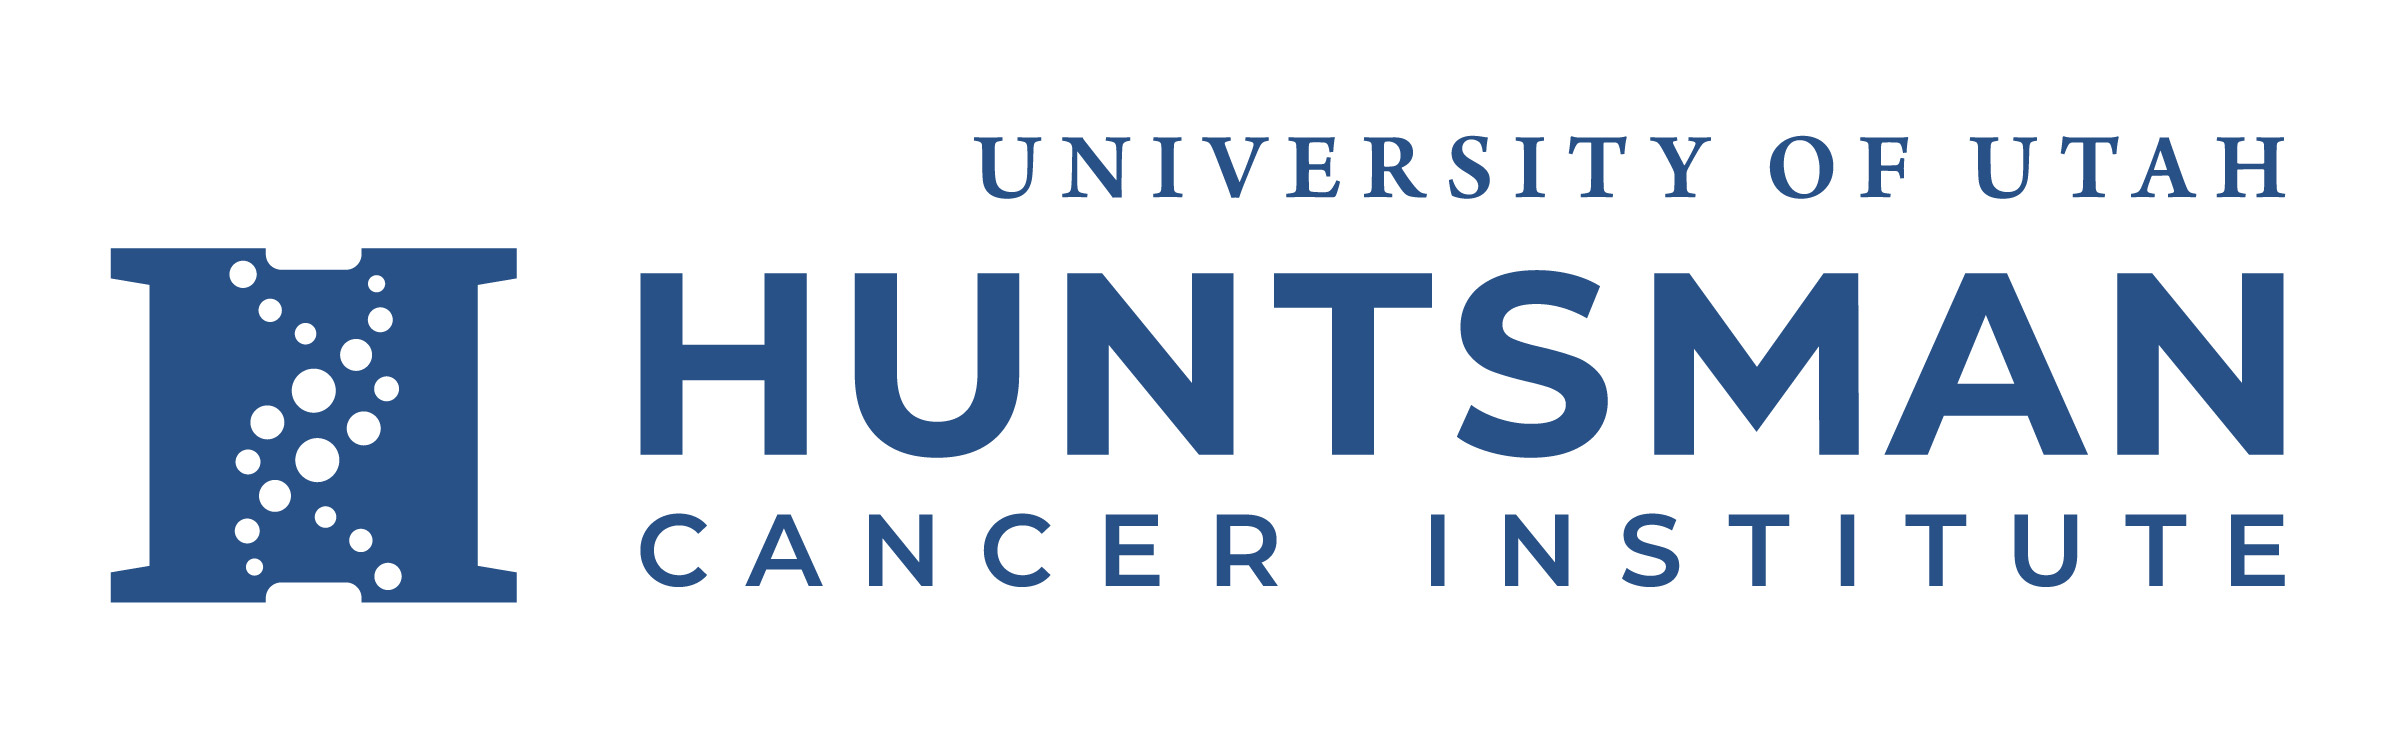 Hunstman Cancer Institute University of Utah